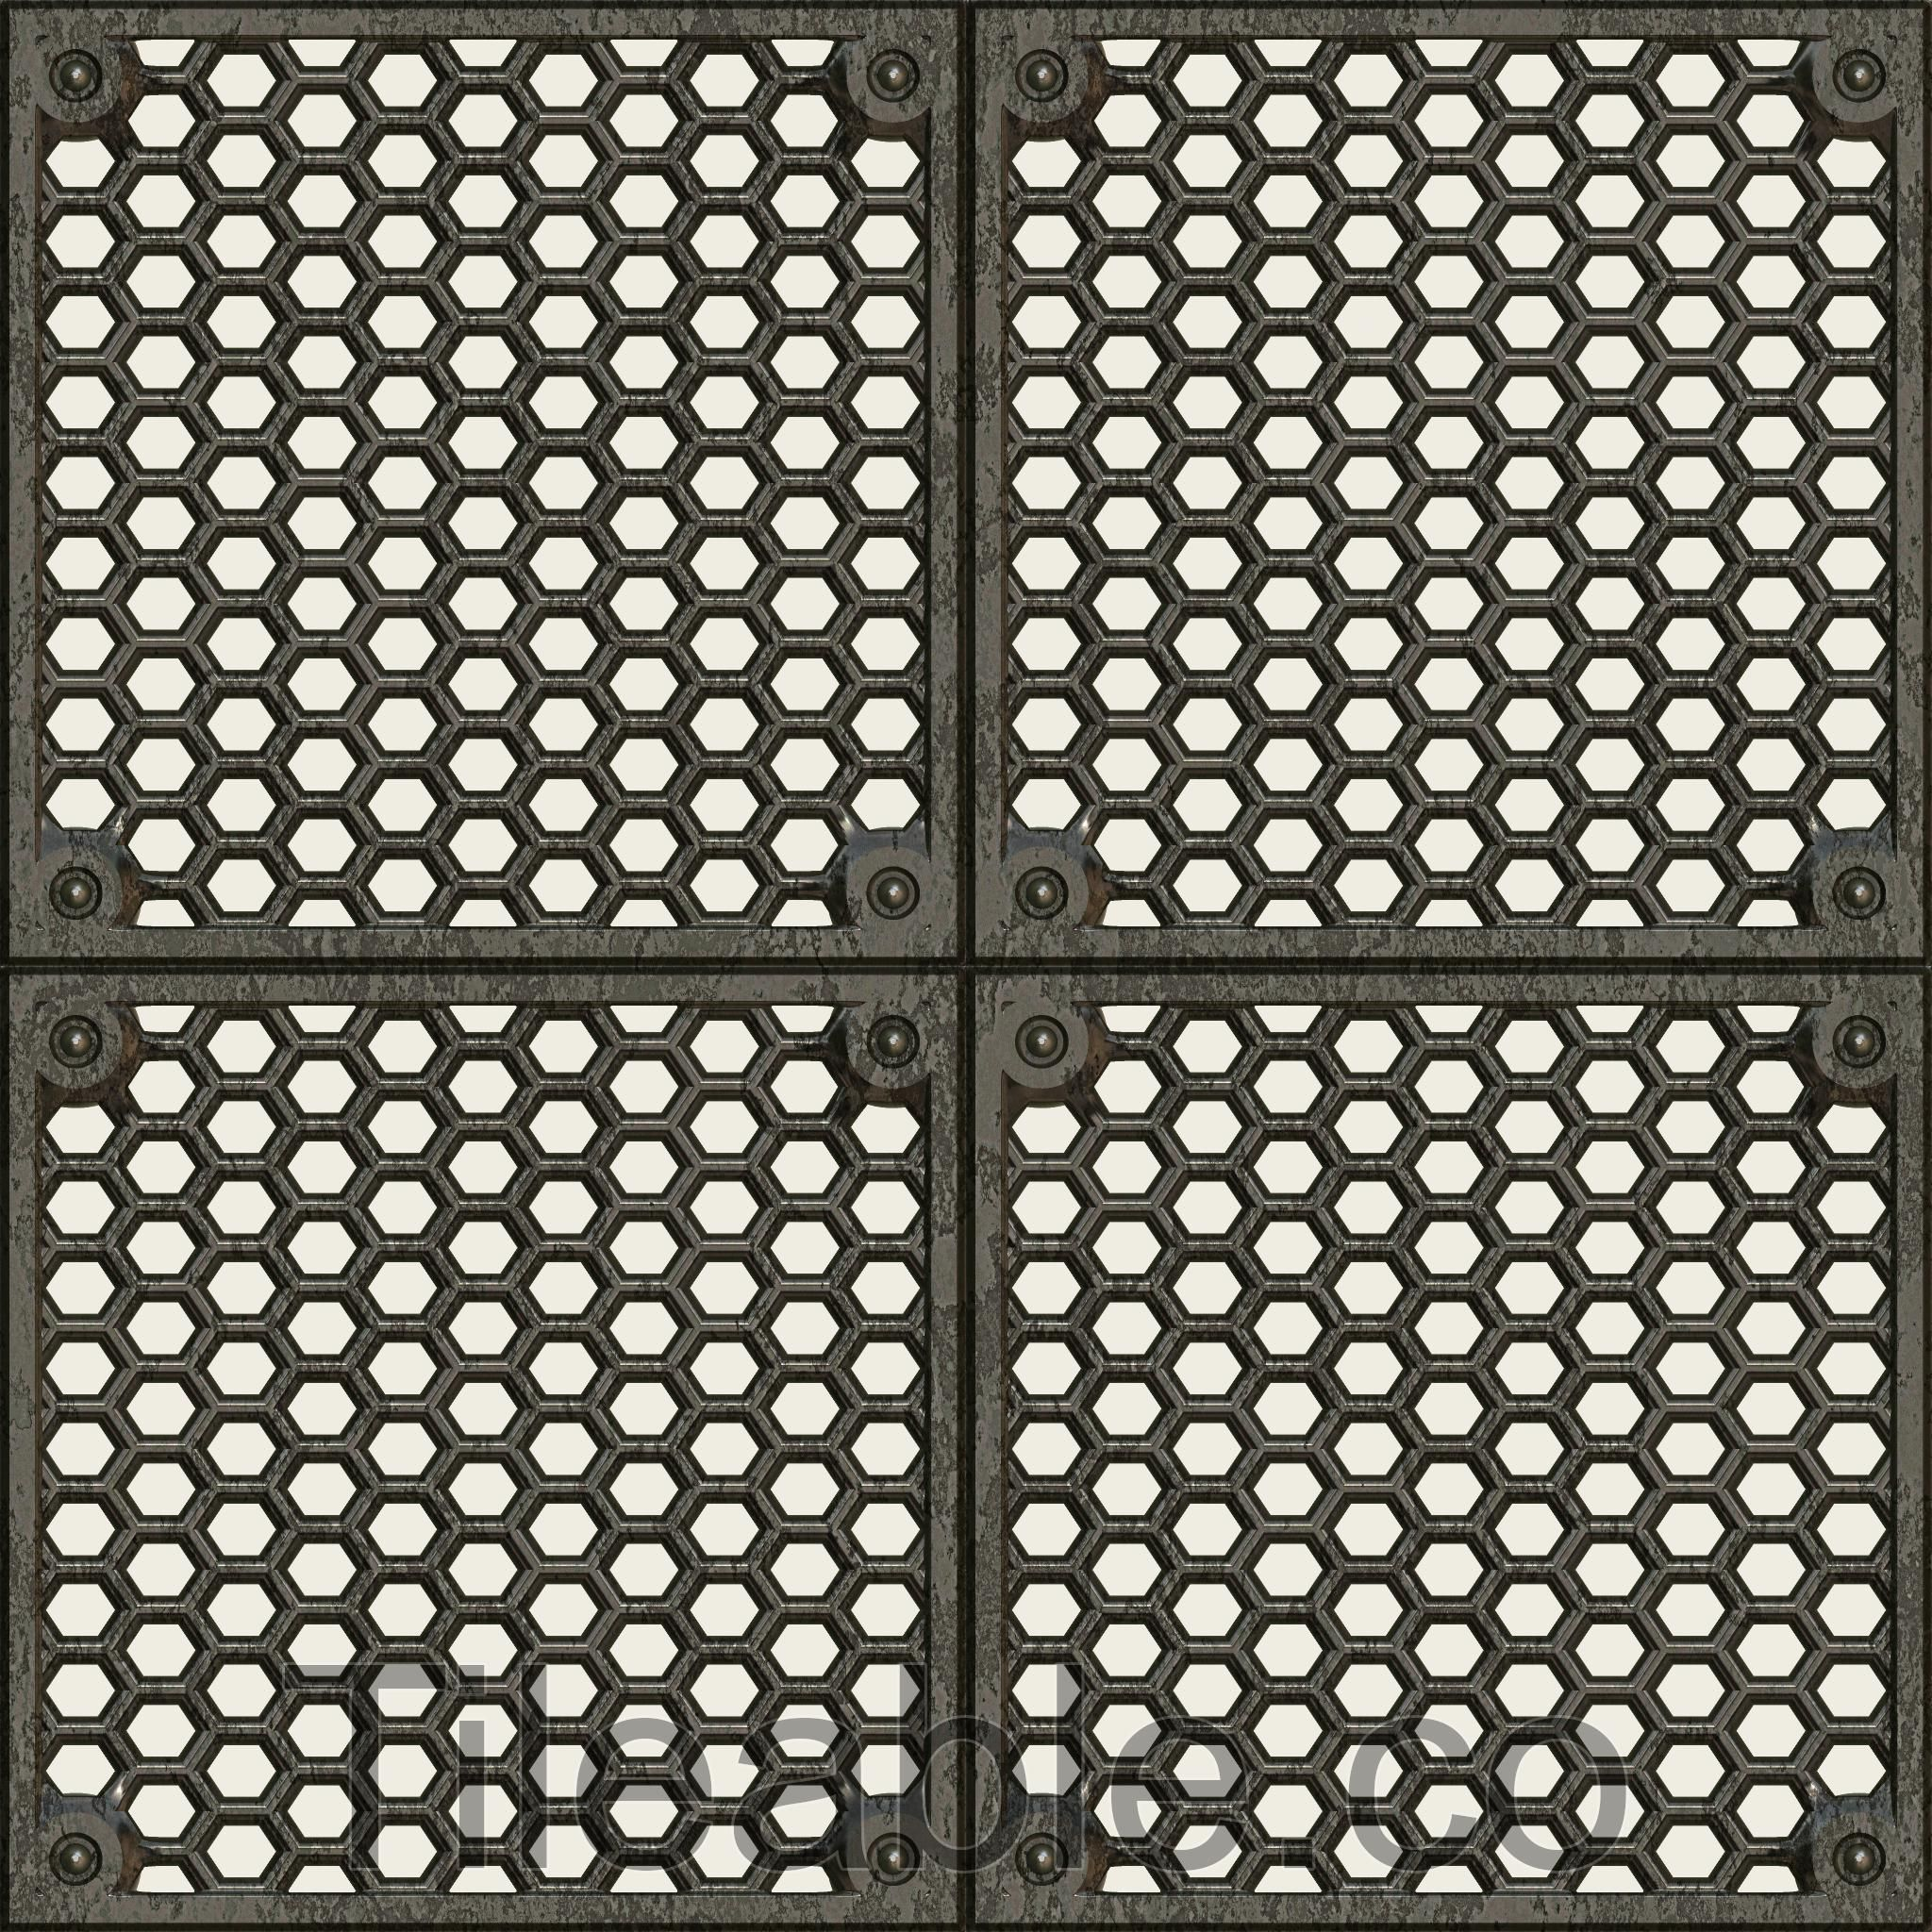 Metal Floor Grate Design 3 Awsome Texture With All 3d Modelling Maps Included Get A 512 512 Px Copy Of This Texture For In 2020 Metal Floor Floor Texture Flooring